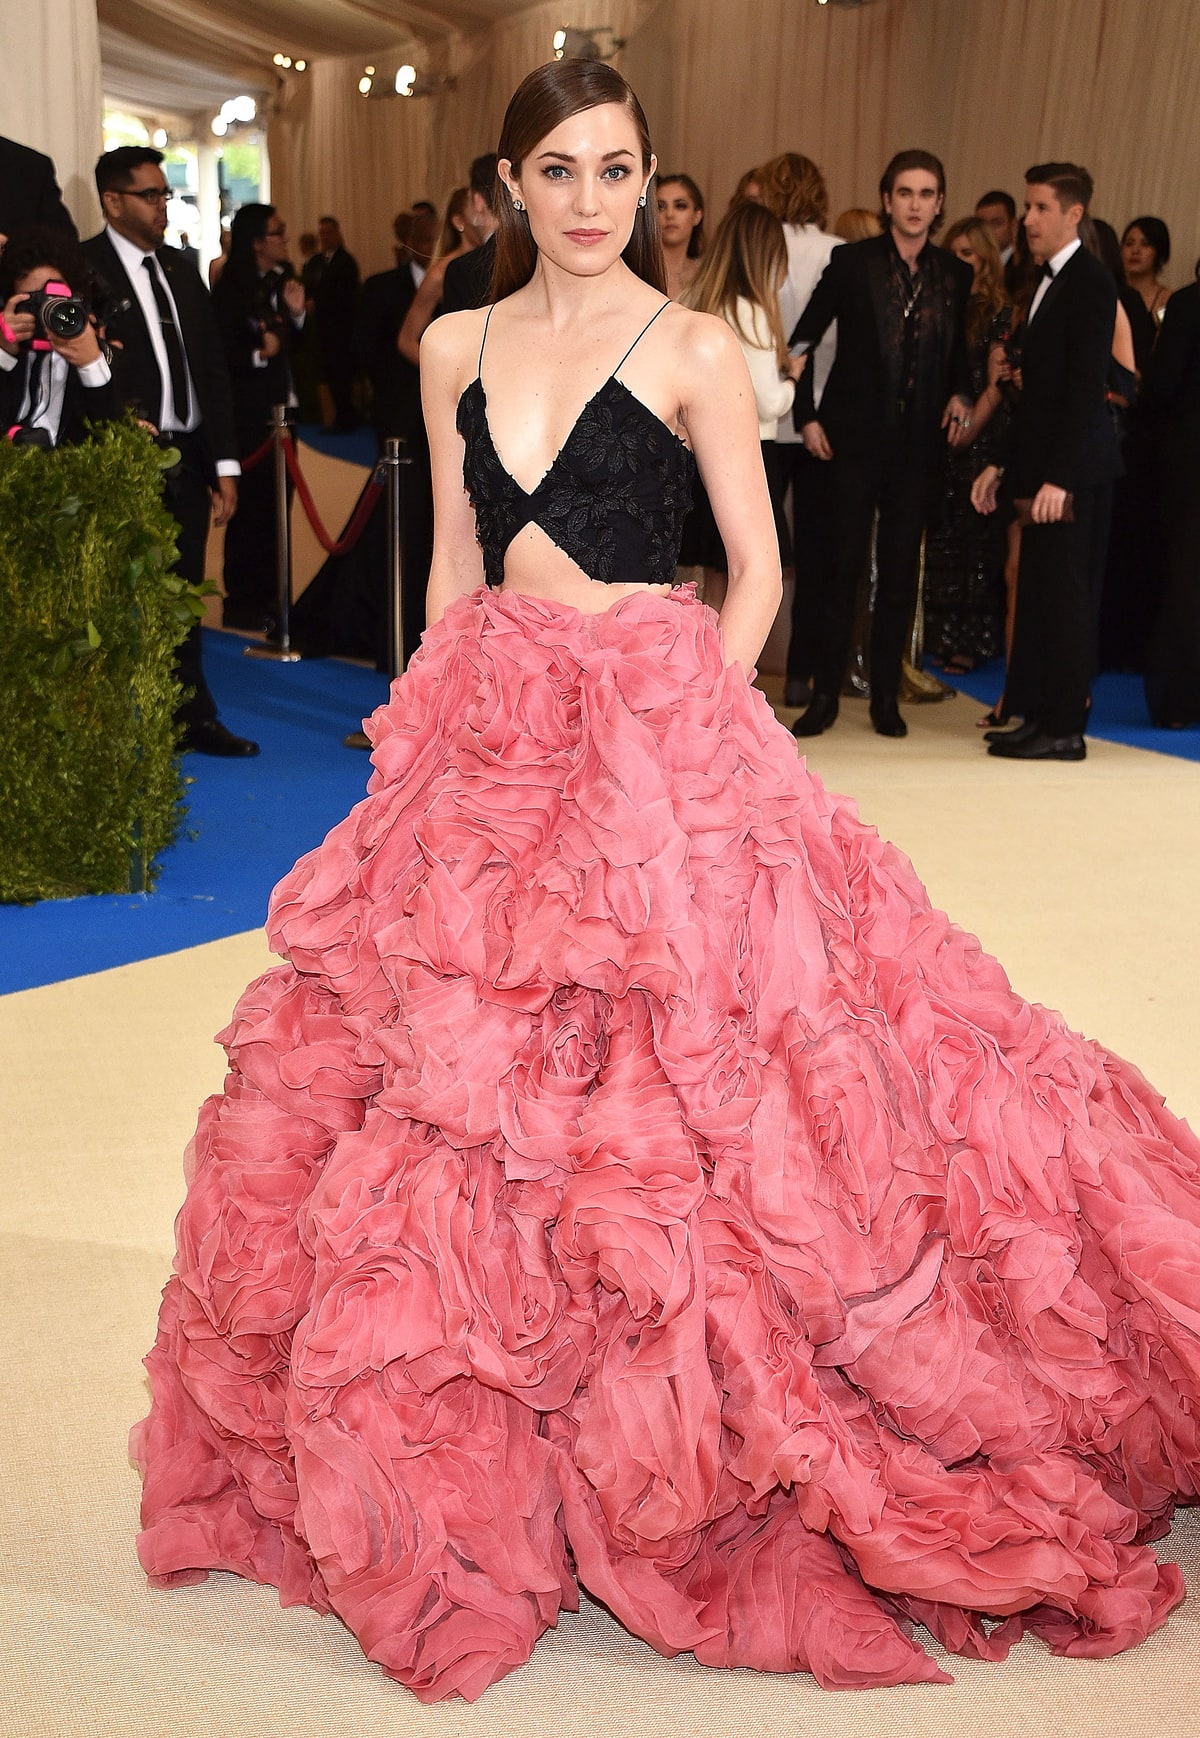 Laura Osnes   in Christian Siriano.  Not even sure who this lady is but she is giving me throwback Rihanna in that gorgeous Giambattista Valli dress in the same poppy colored hue a few years ago. I love the fact that the designer broke up the volume of the dress with the two pieces. She shined in this floral confection.